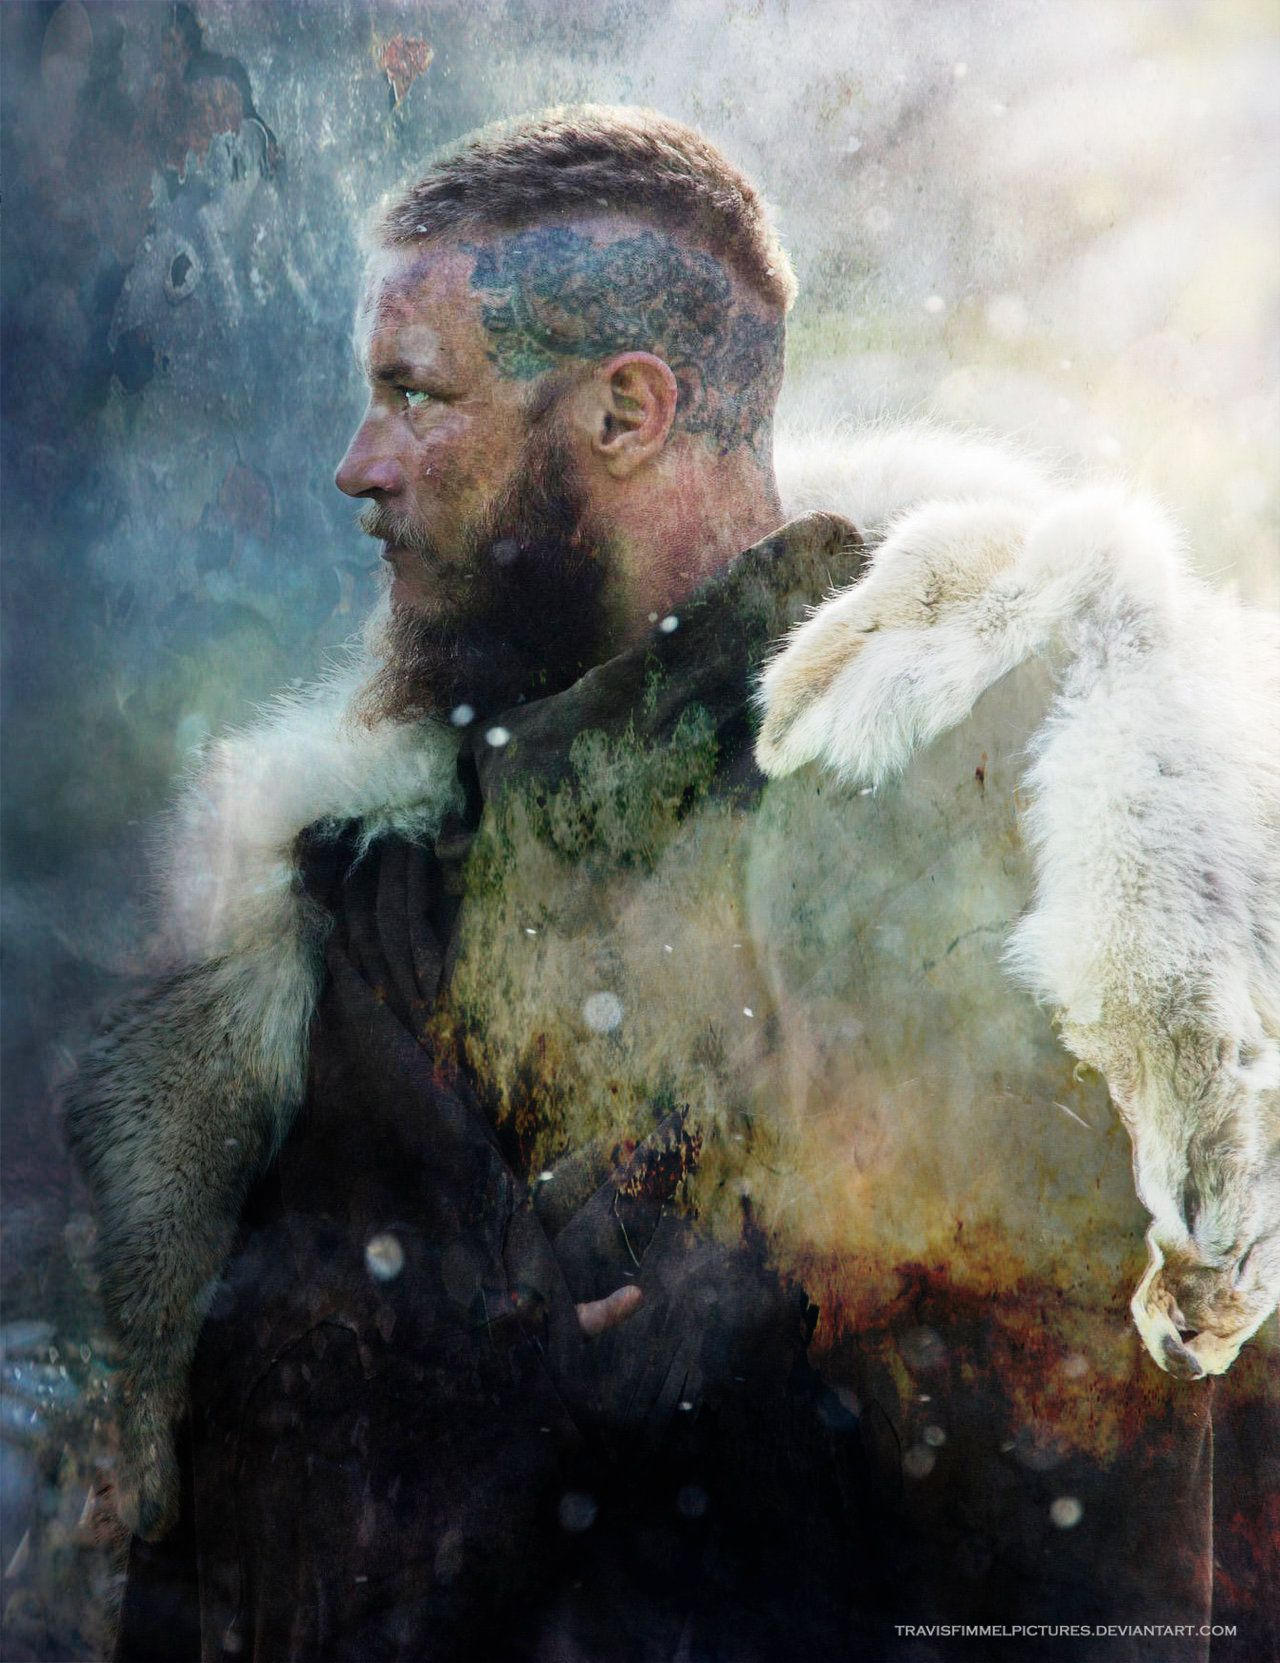 King Ragnar By Travisfimmelpictures Deviantart Com On Deviantart